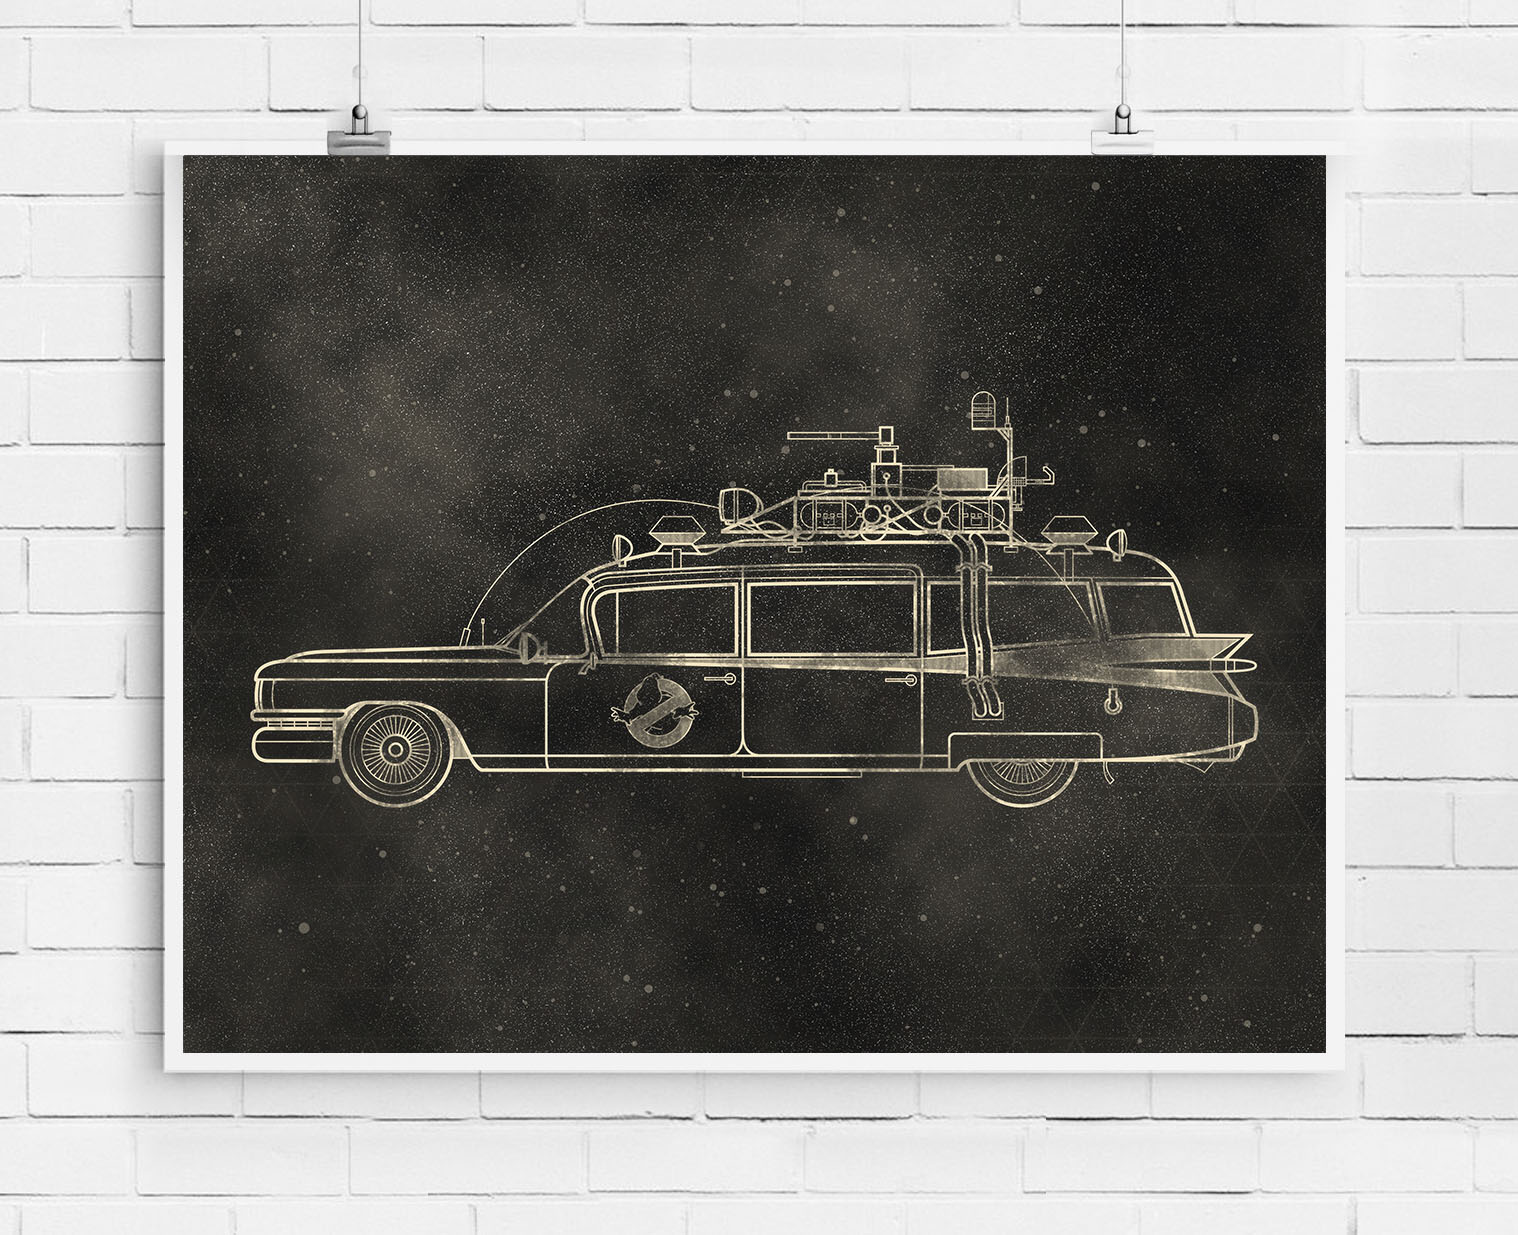 Ghostbusters: Print coming soon